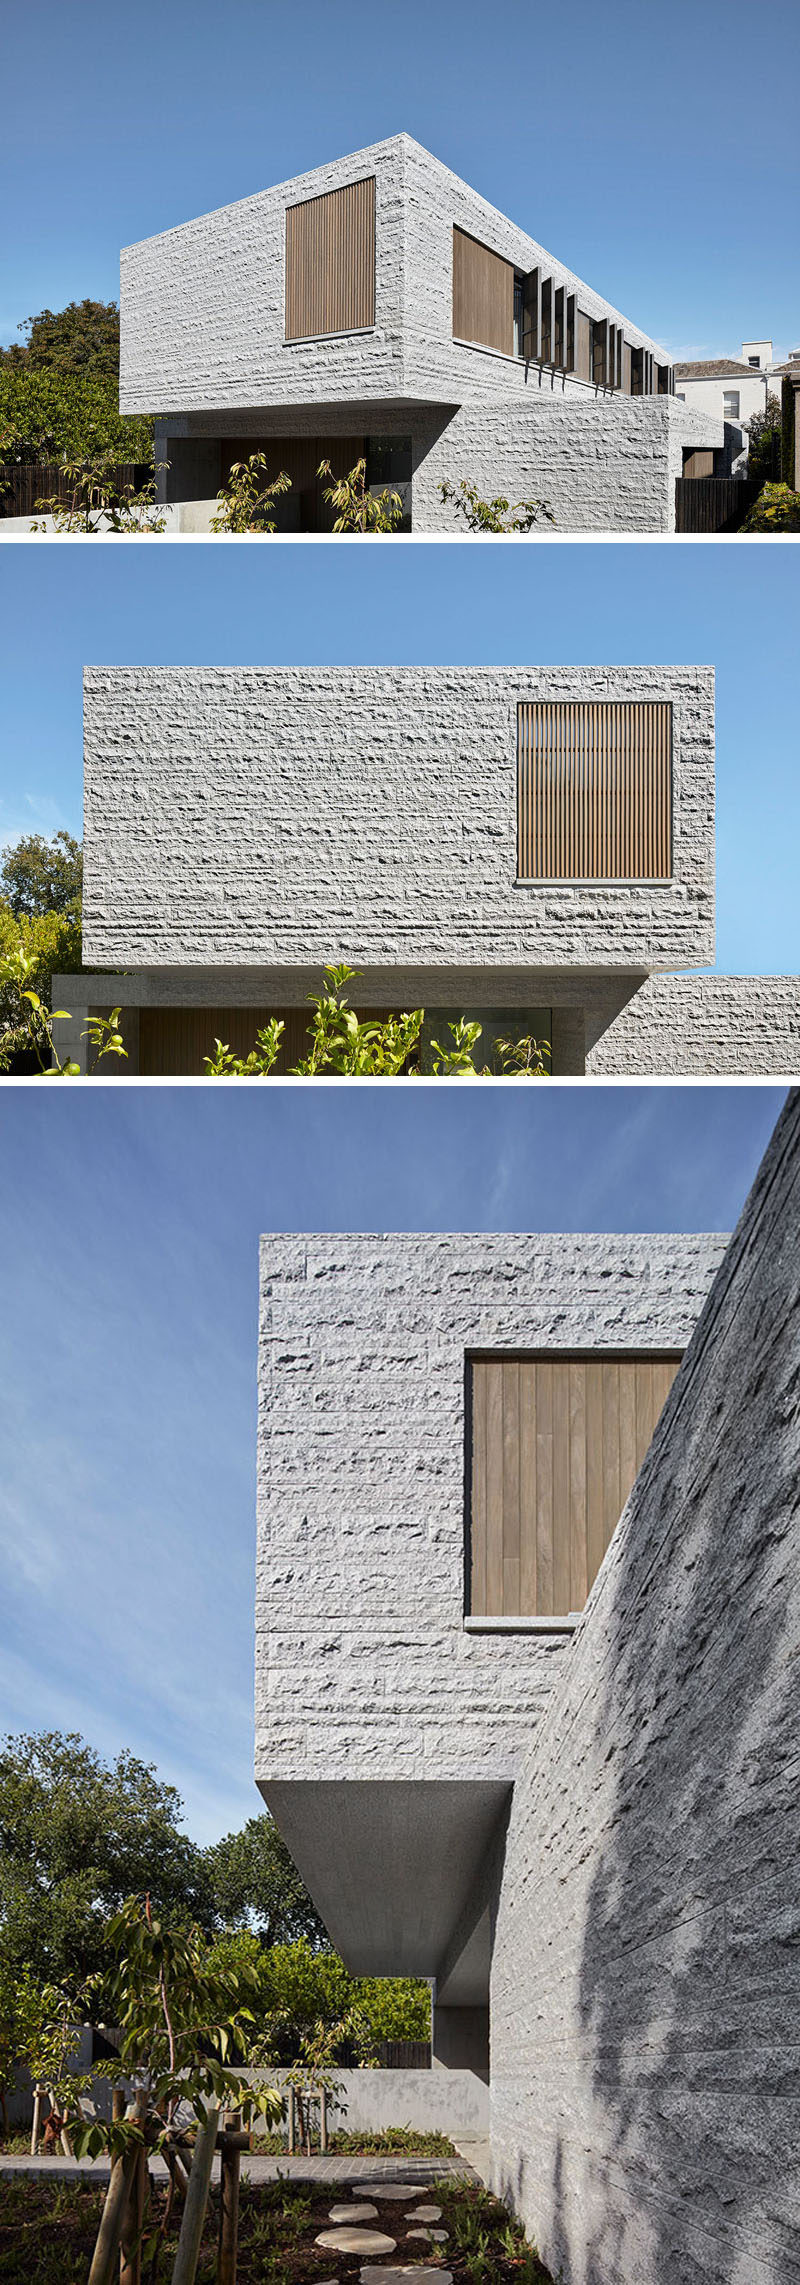 b.e architecture have recently completed a new three-storey house in Melbourne, Australia, that features 260 tons of granite which make up the building's skin. #ModernArchitecture #GraniteFacade #ModernHouse